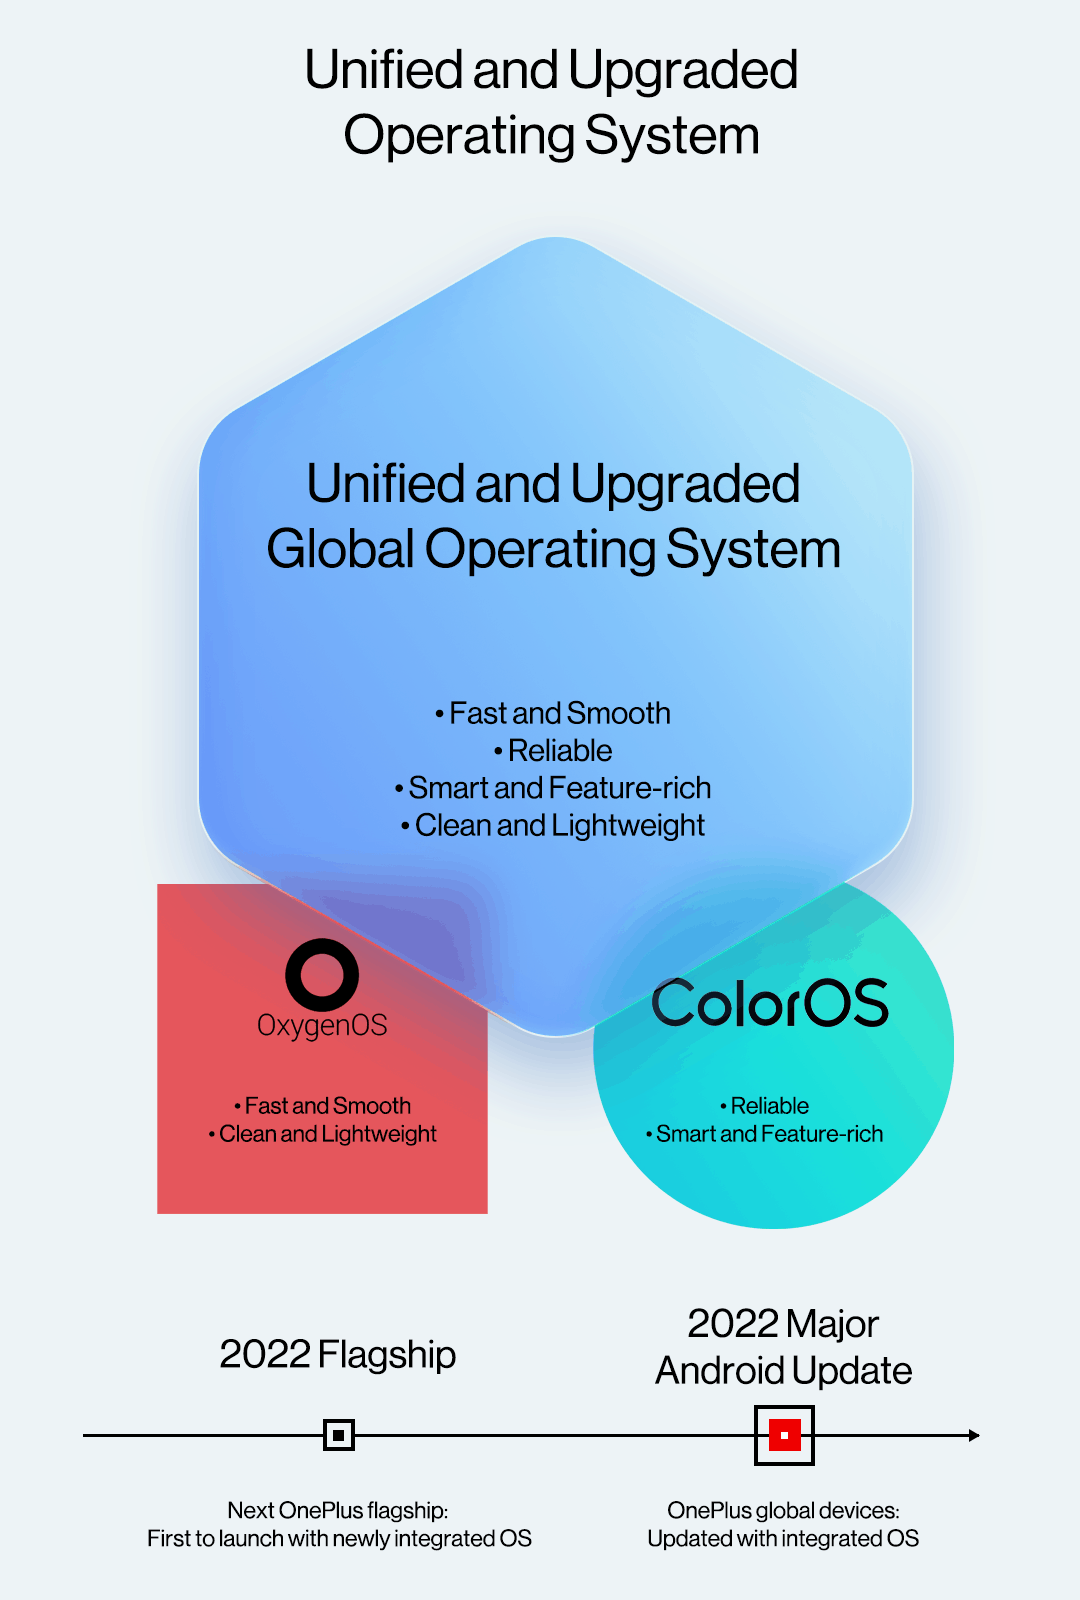 OnePlus OPPO unified OS